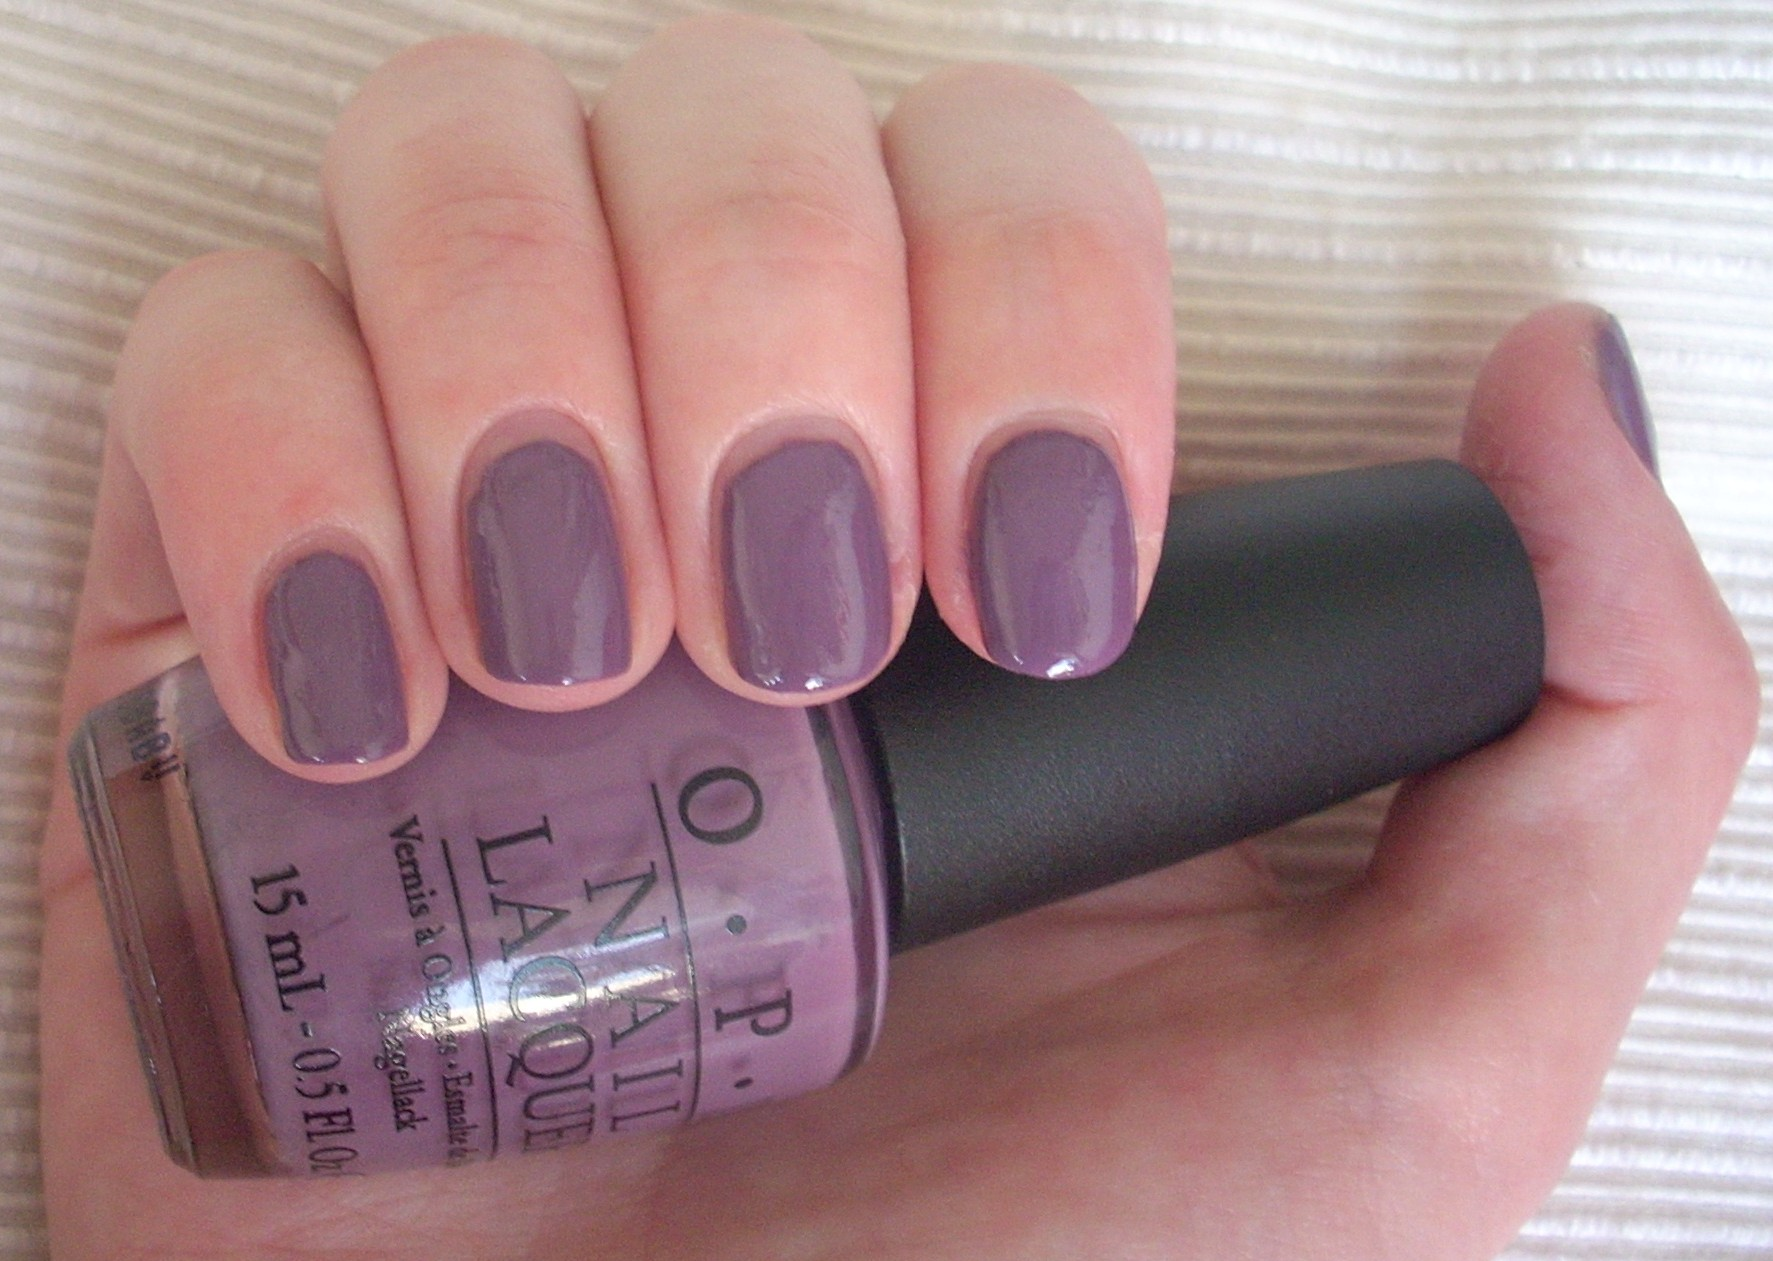 OPI Parlez-Vous OPI nail polish review | Through The Looking Glass